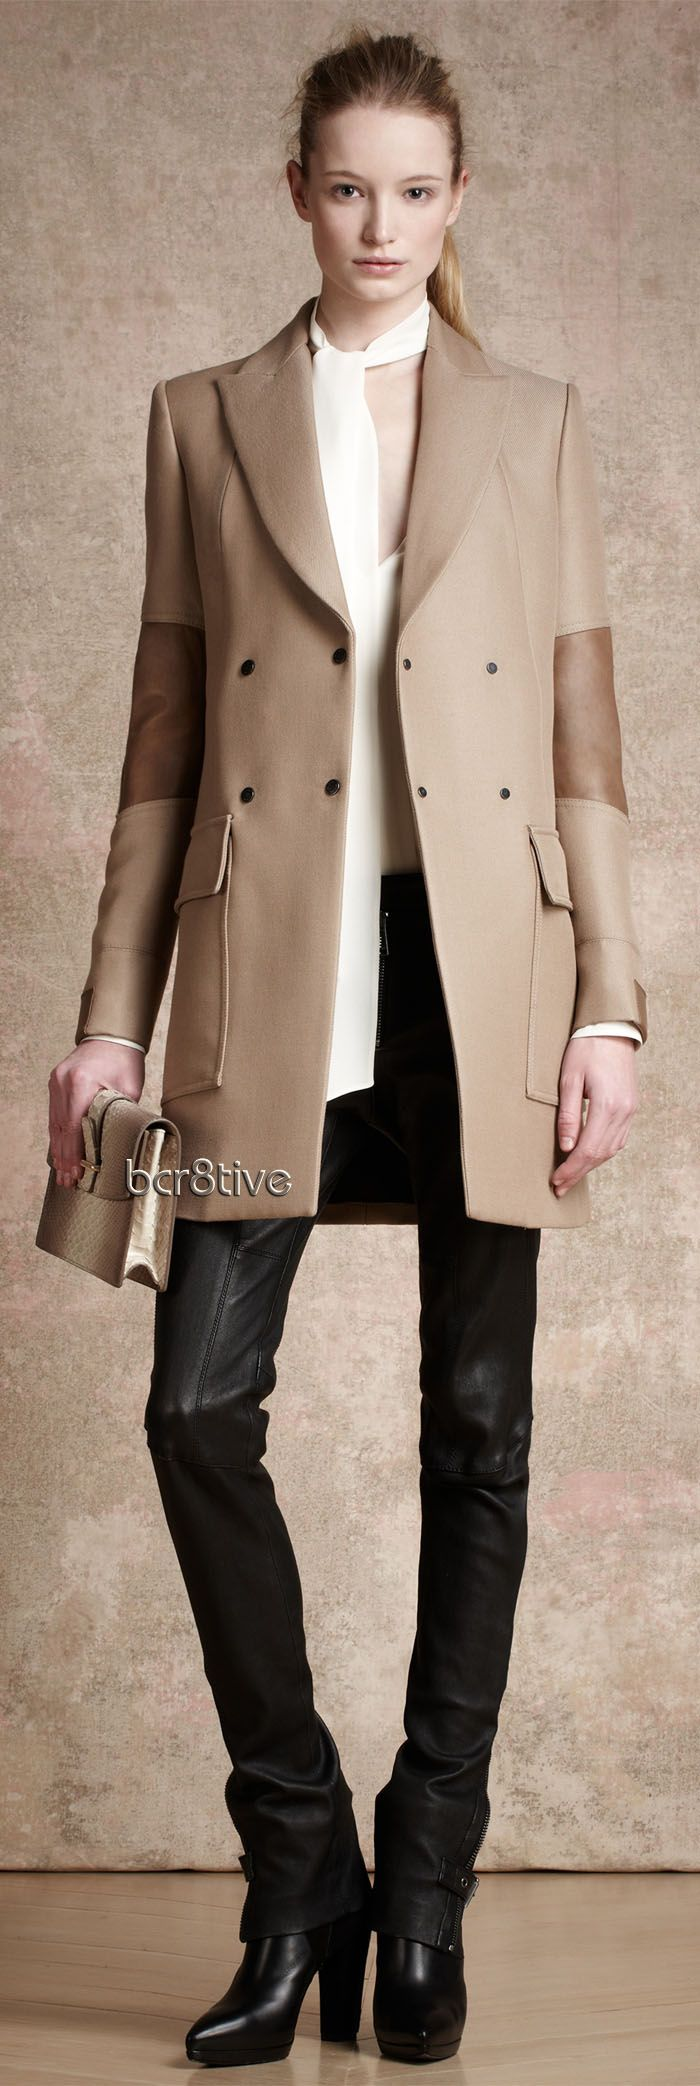 Belstaff Fall Winter 2013-14... adorable outfit & coat, ditch the clutch bag...